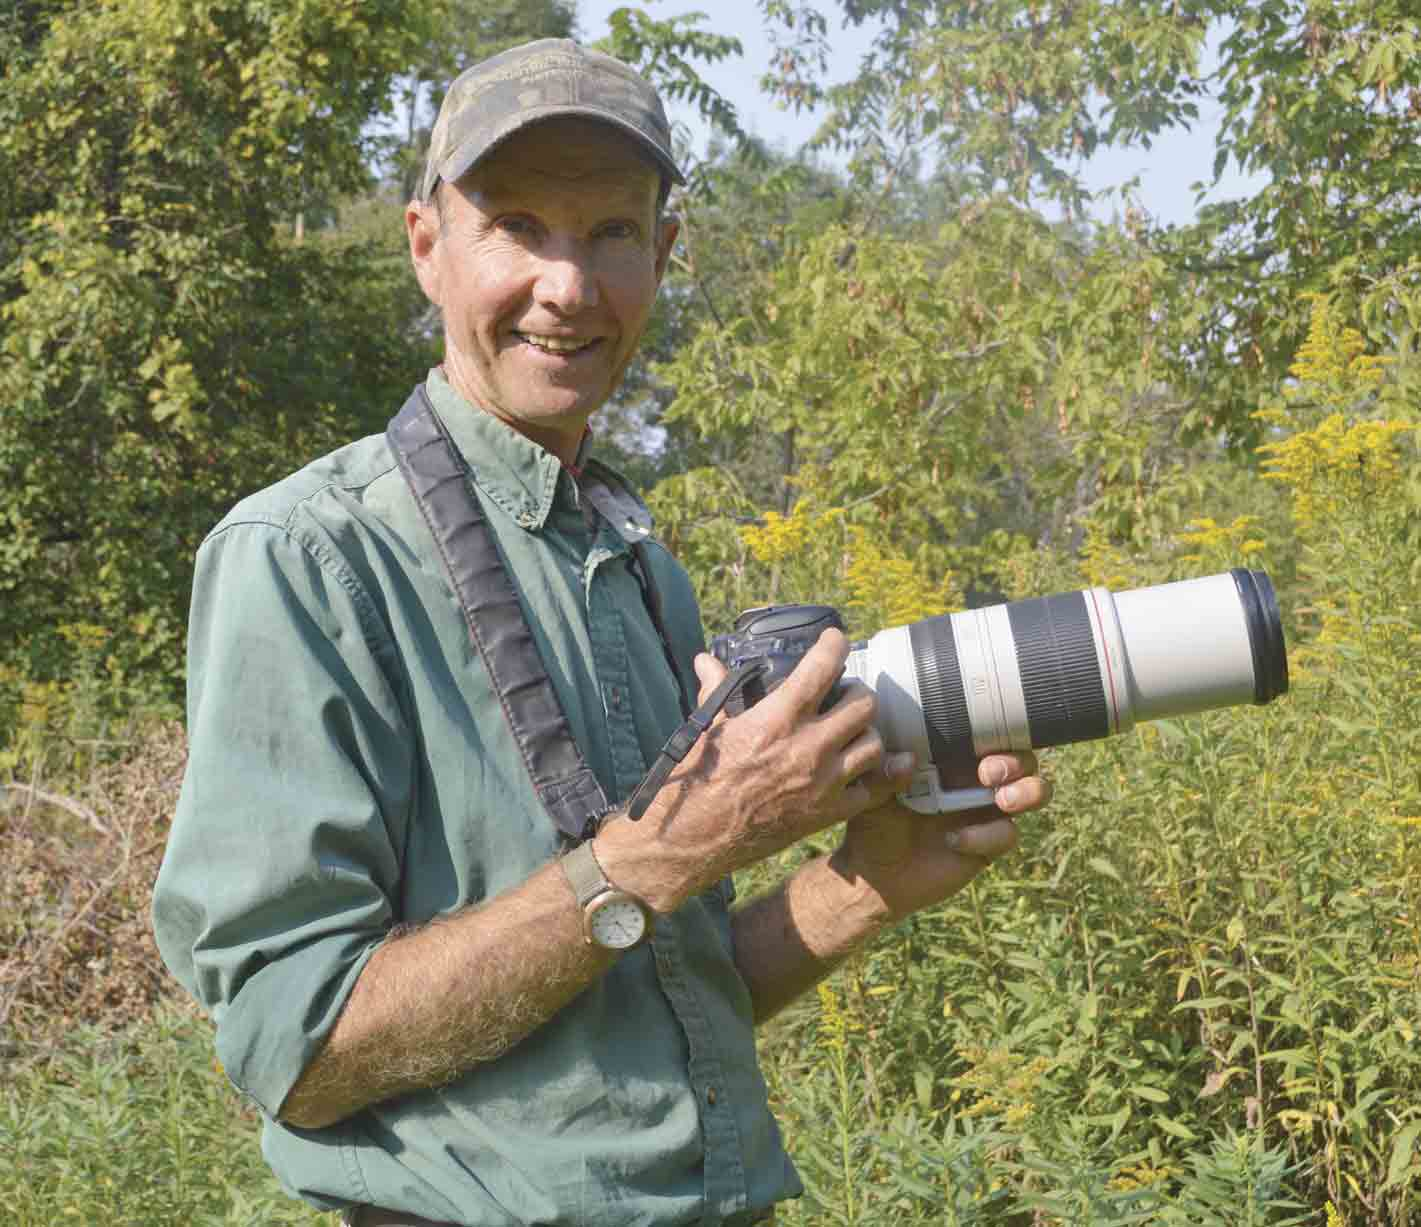 Larry Reis of Calmar was recently presented with the Outstanding Partner Award by Northeast Iowa Resource Conservation and Development for his dedication to natural resource interpretation, education, and photography. (Zakary Kriener photo) 	Reis receives Outstanding Partner...